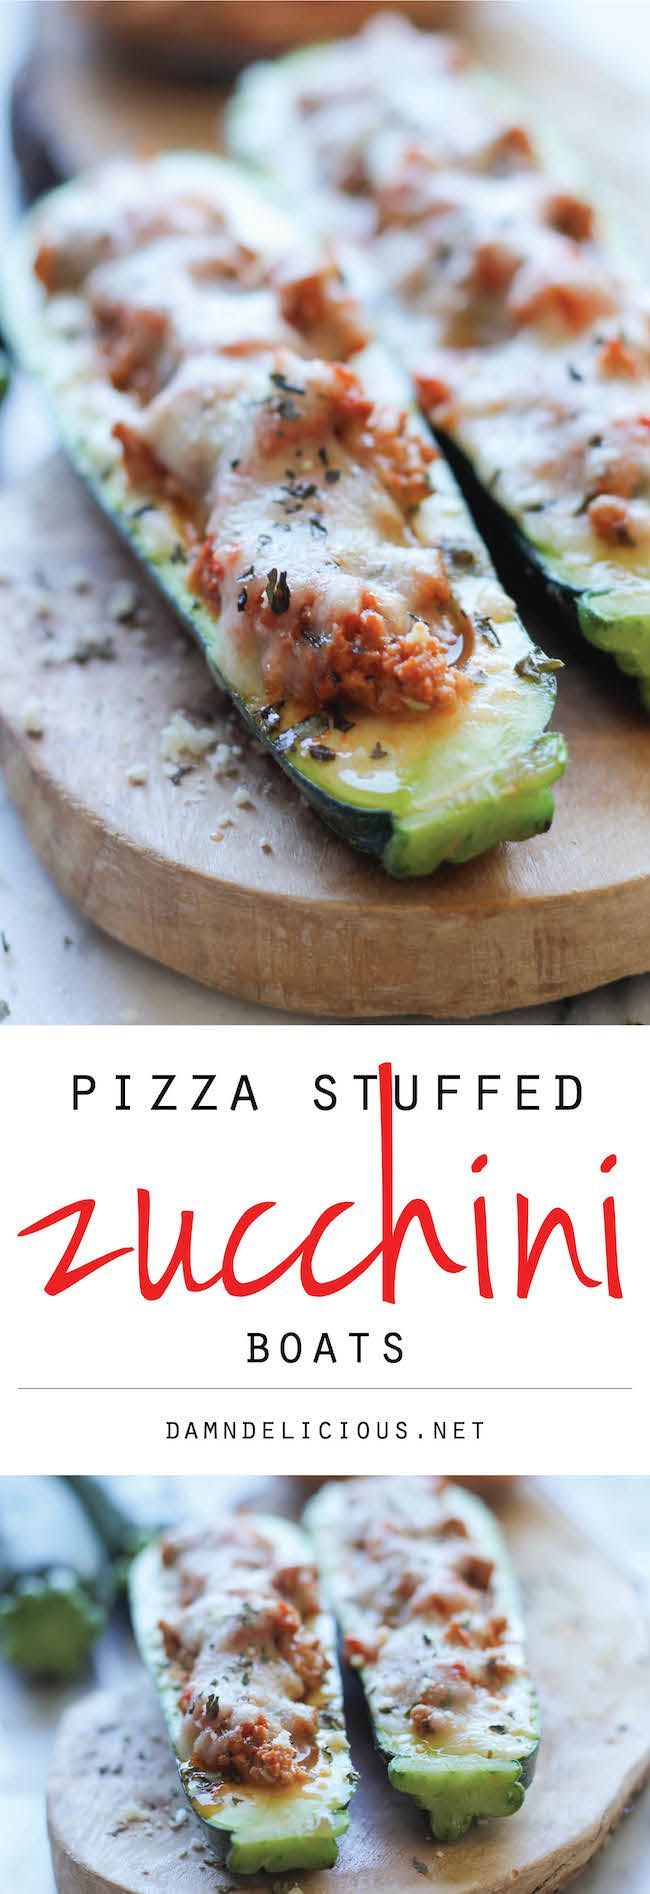 Pizza Stuffed Zucchini Boats. Phase 2 friendly. Notes: use fat free mozarella string cheese. Phase 1, skip cheese.